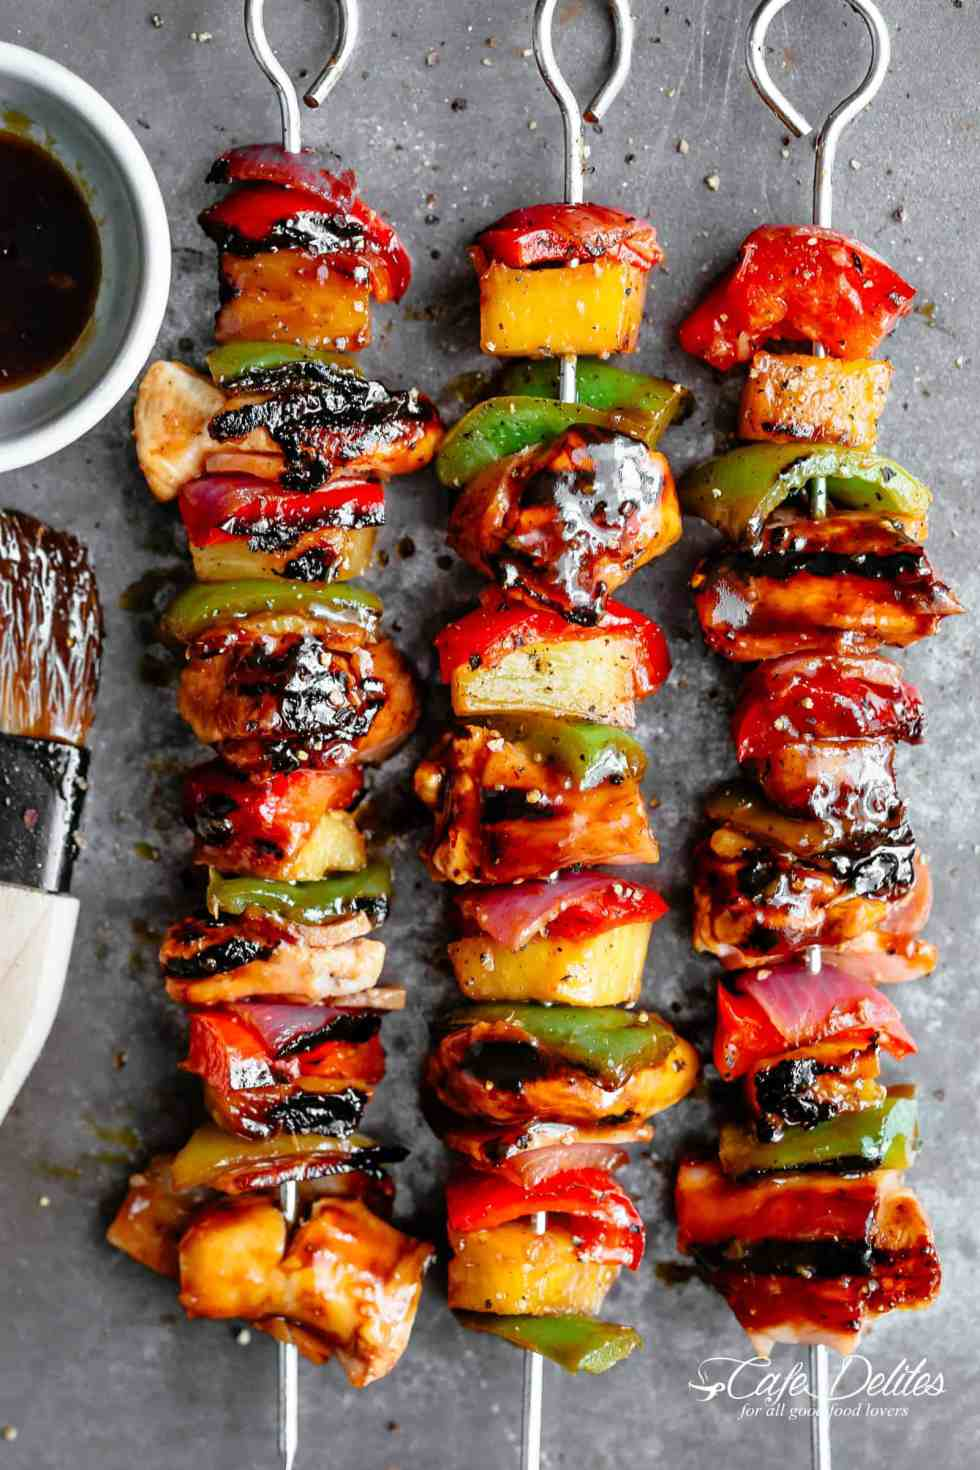 Hawaiian Bacon Pineapple Chicken Kebabs with a BBQ twist! Crispy bacon and chicken smothered in a Hawaiian style pineapple and barbecue sauce, these skewers are so addictive! | https://cafedelites.com